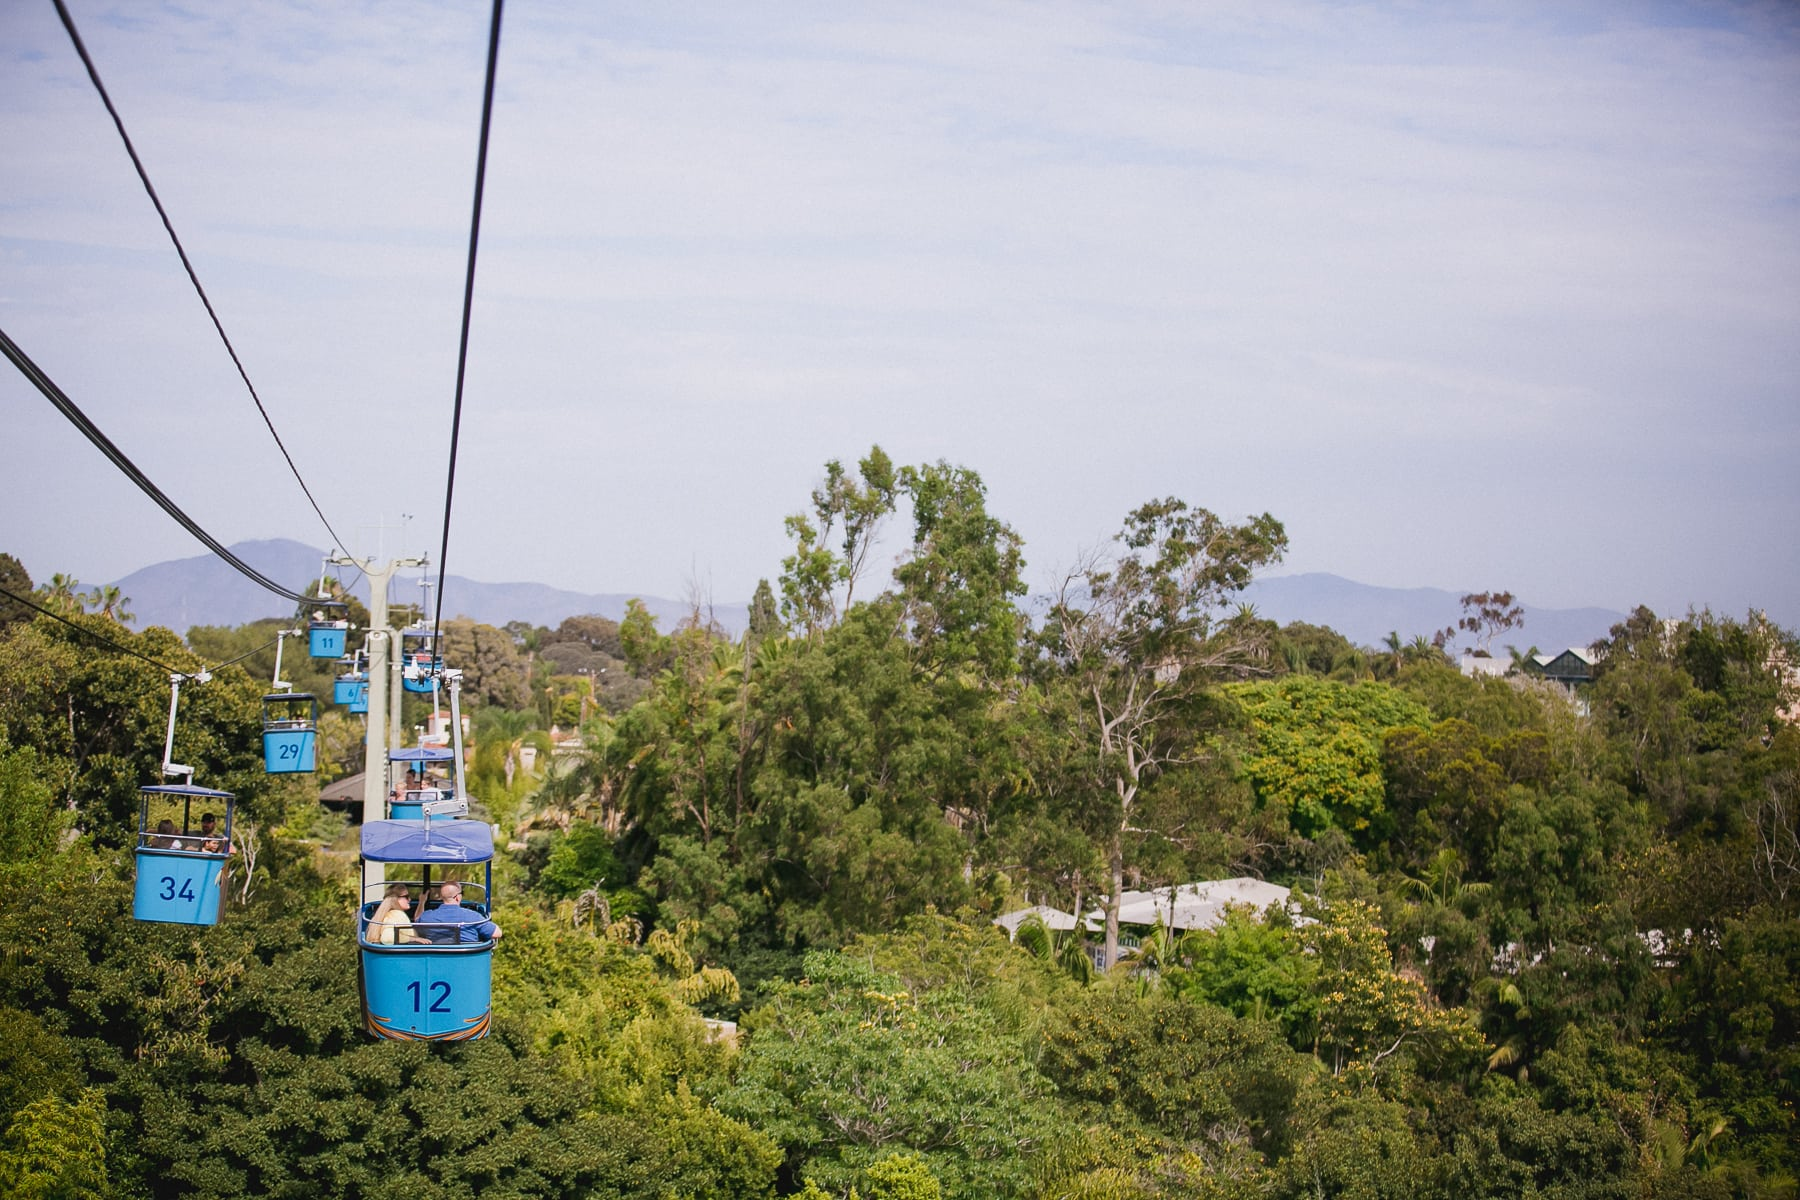 San Diego Zoo engagement session in the aerial tram